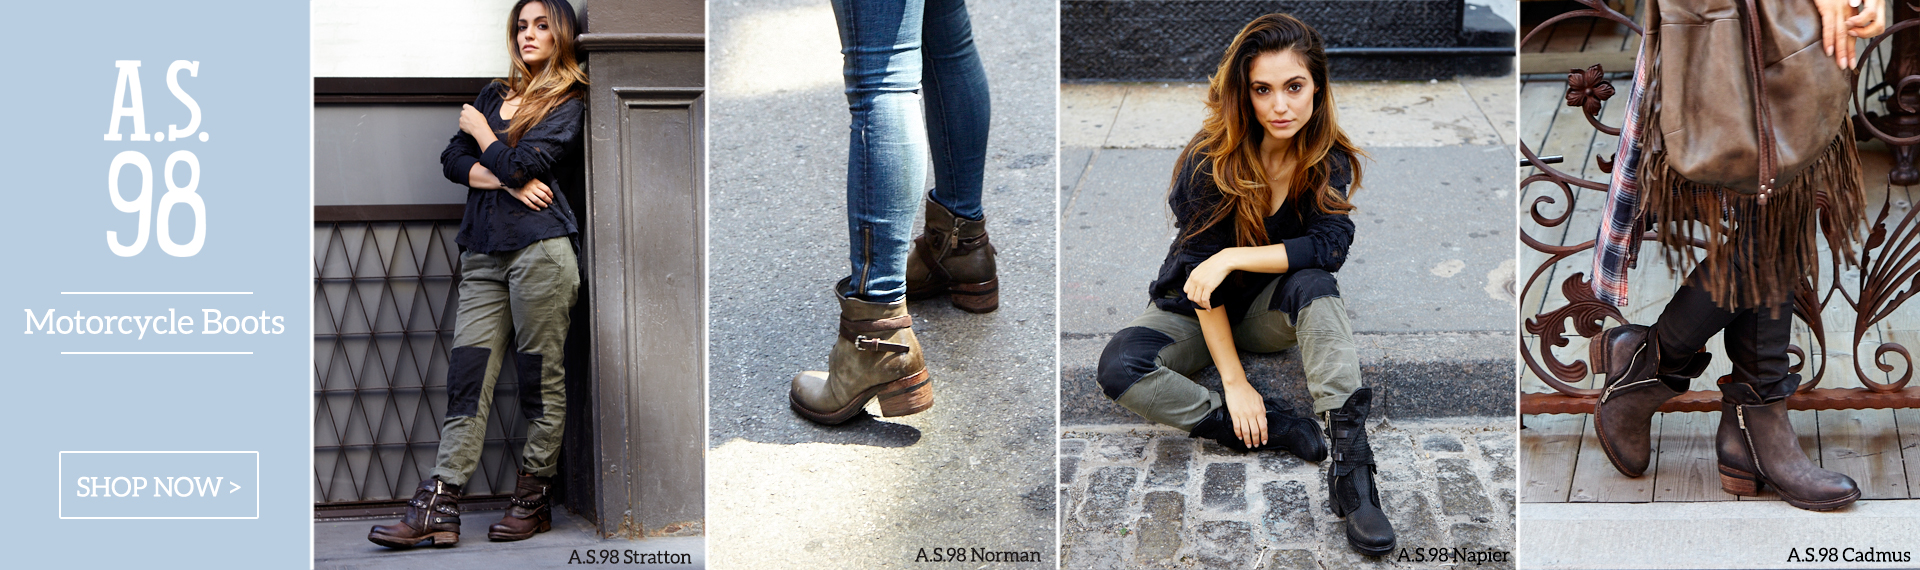 Shop women's shoes at Saks Fifth Avenue. Enjoy free shipping on all orders.